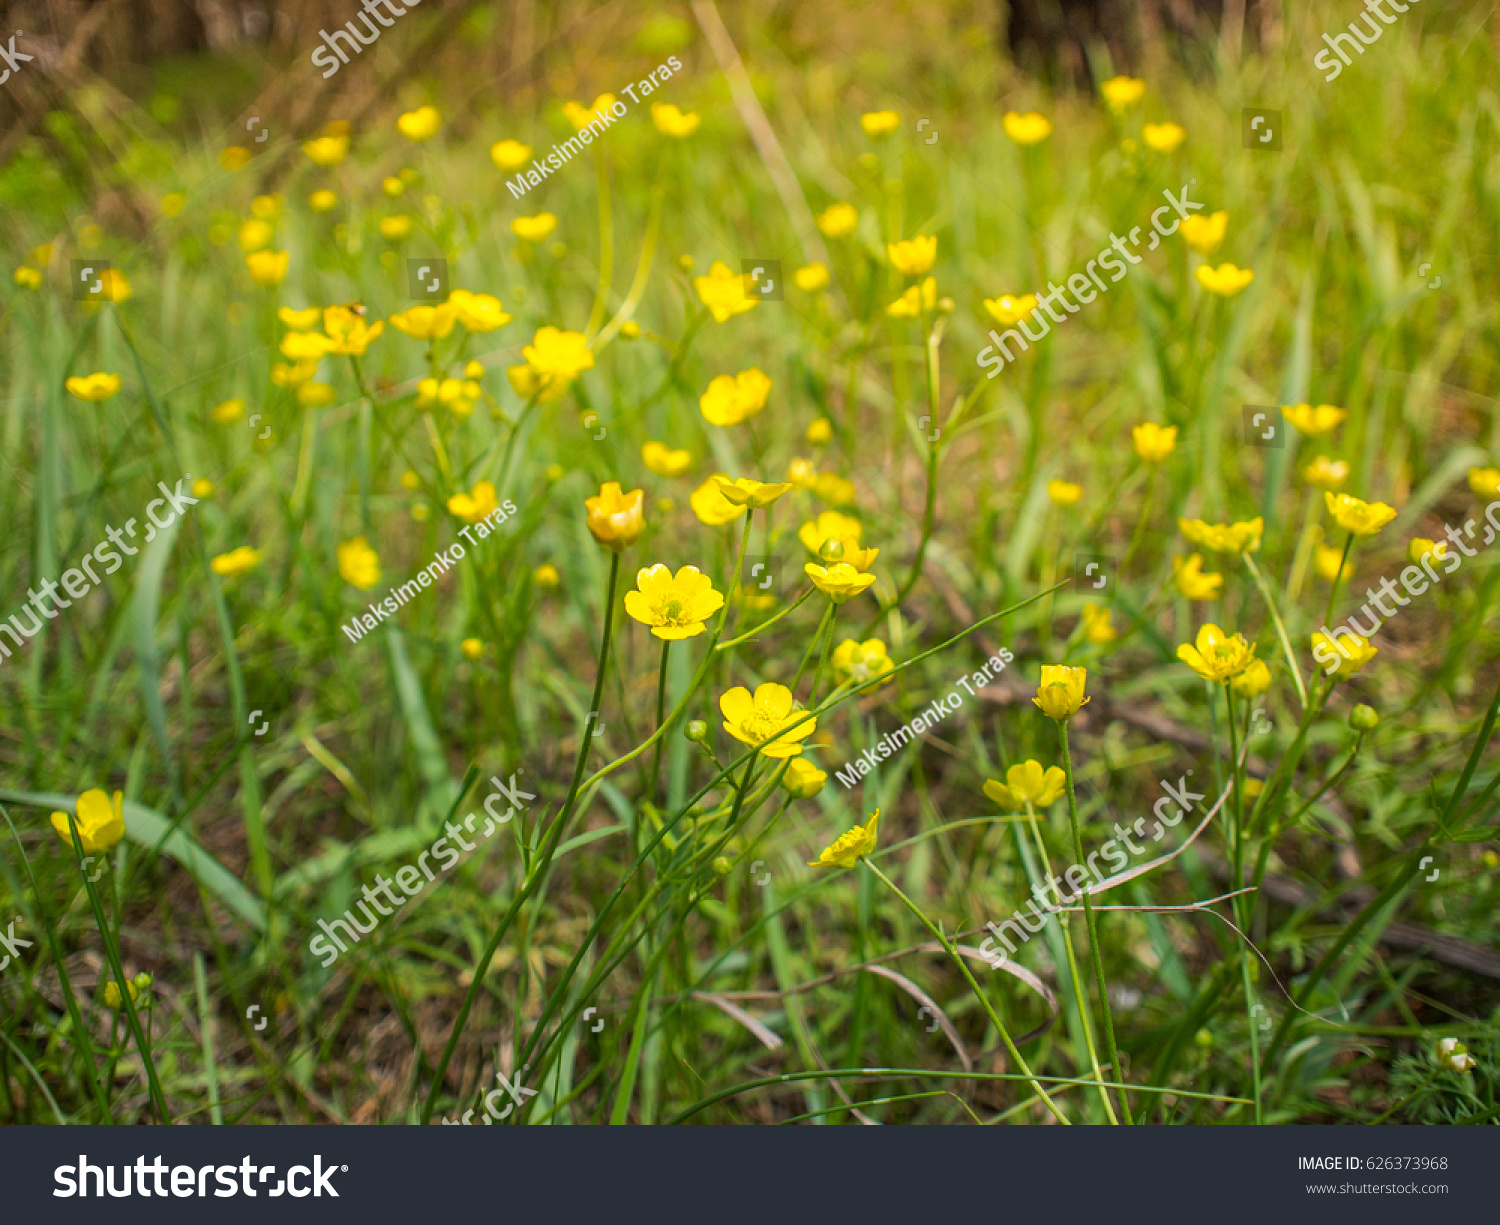 Midsummer Countryside Meadow With Flowers Abstract Close Up Neutral